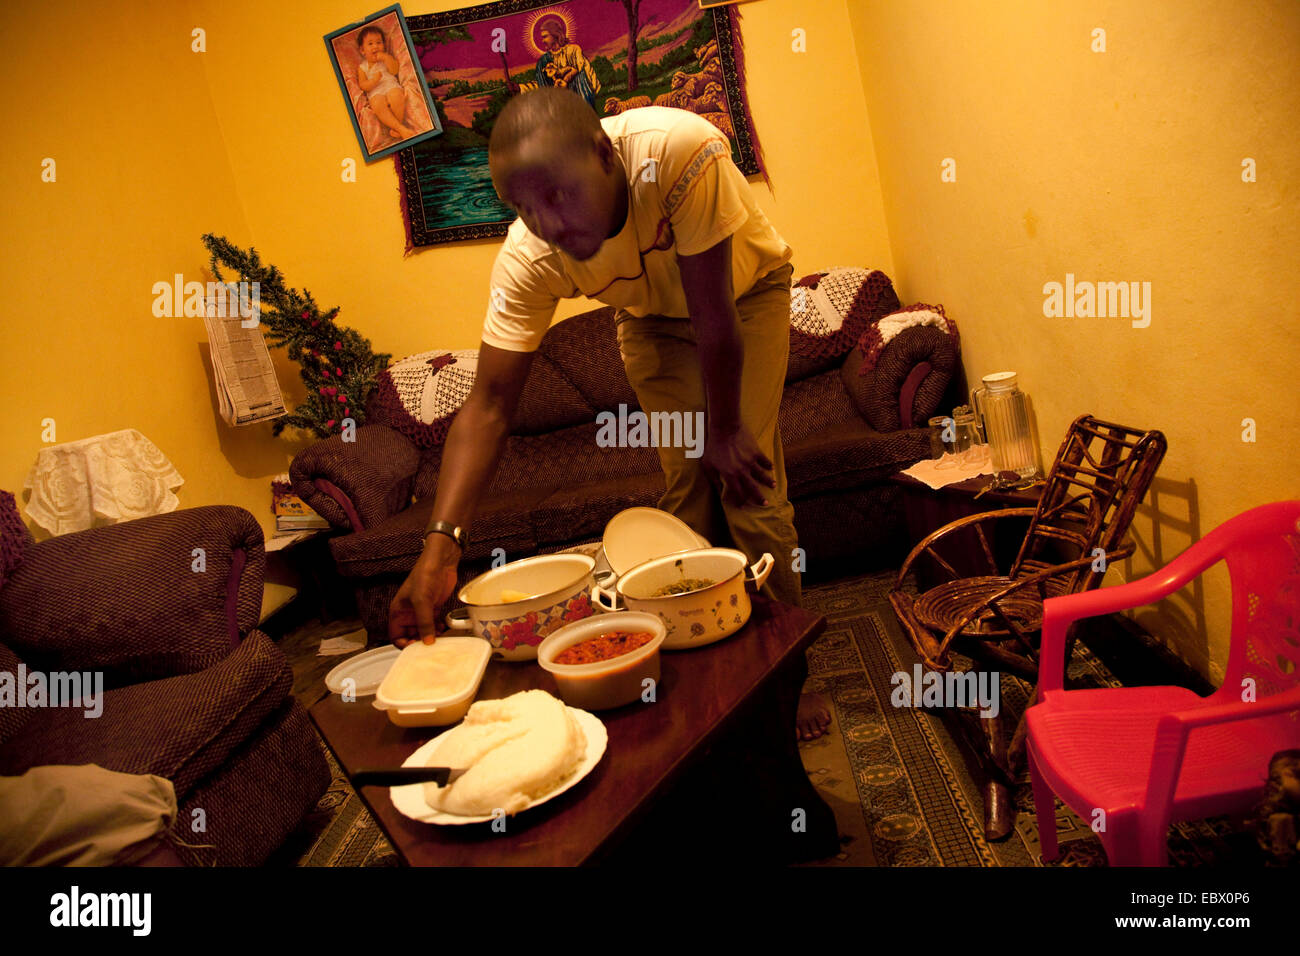 Man putting food on the table in a christian household, christian brodery on the wall in the background, Rwanda, - Stock Image